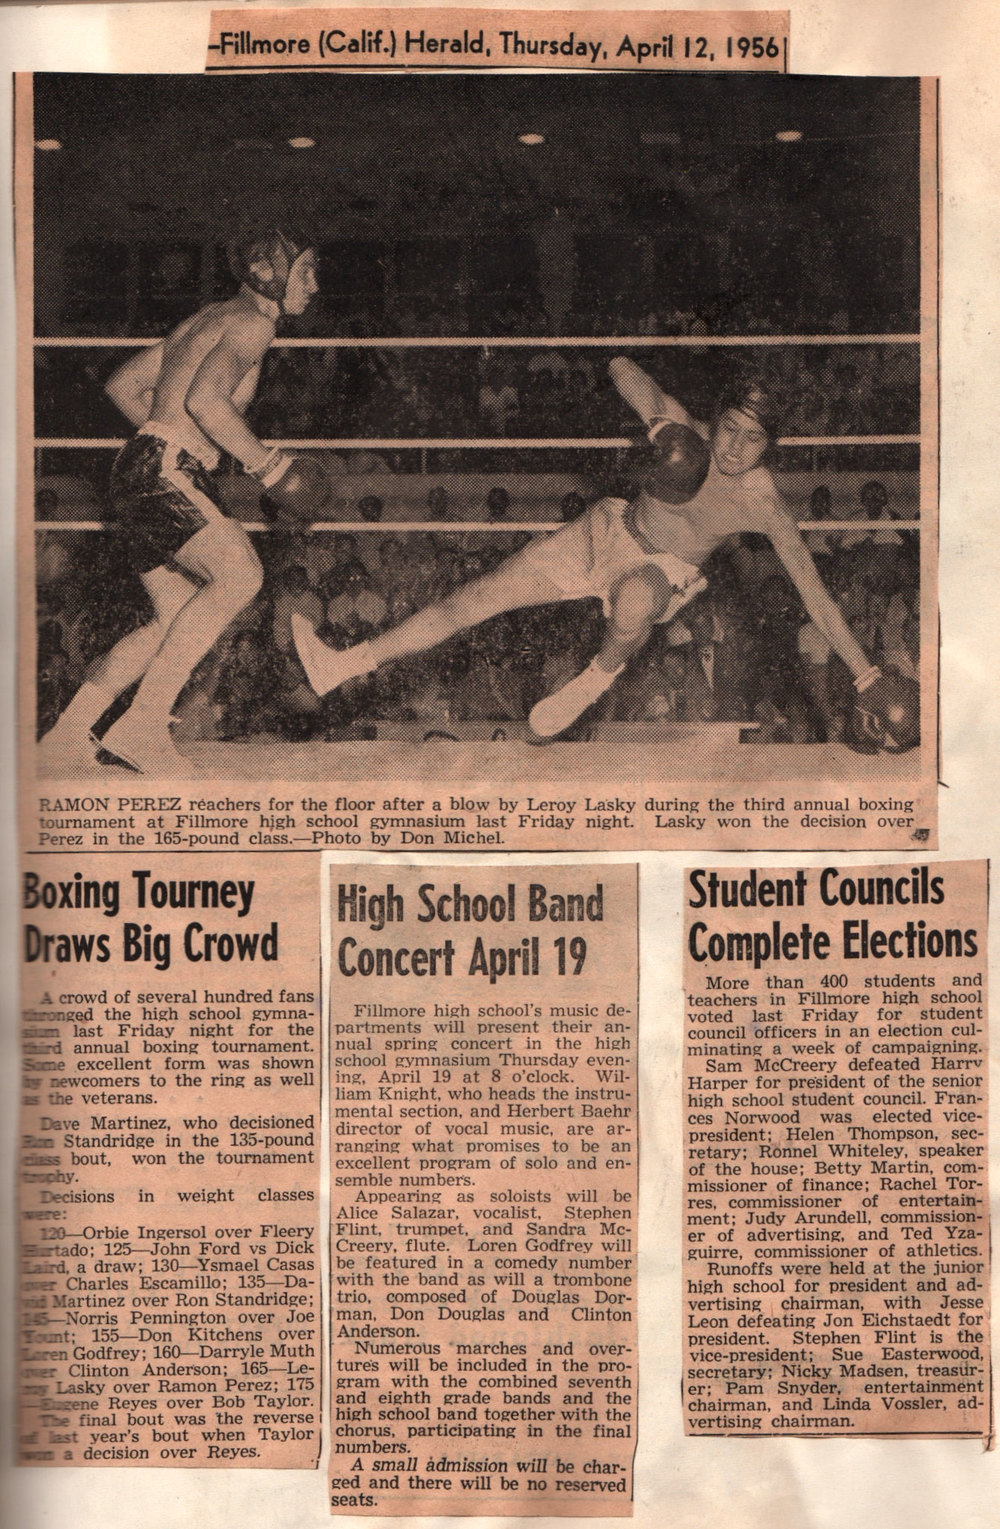 From a 1956 Fillmore Herald Newspaper clipping. A boxing match held in the Fillmore High gym.